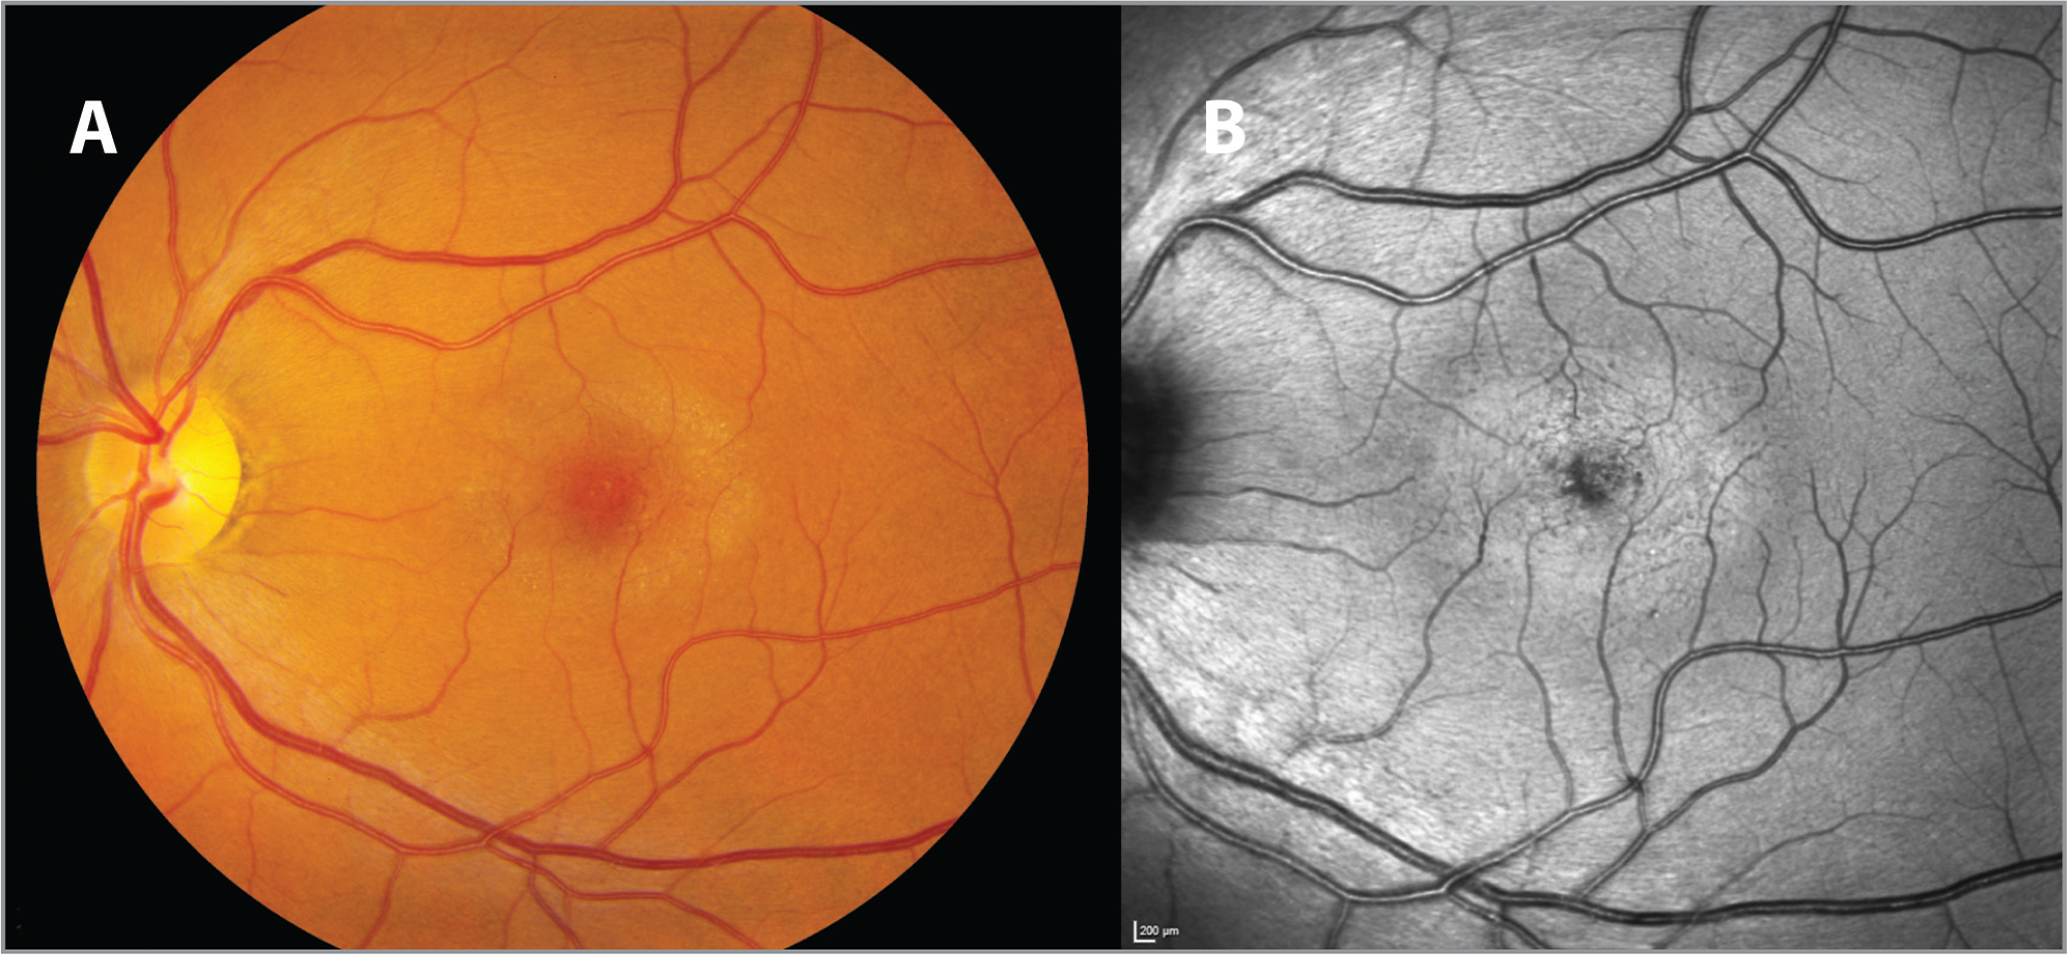 (A) A color fundus photograph shows a prominent perifoveal gray sheen, a variable feature of MacTel. (B) A corresponding blue reflectance image obtained using a 488-nm laser (blue reflectance mode) on the Spectralis HRA+OCT shows a prominent bright halo.